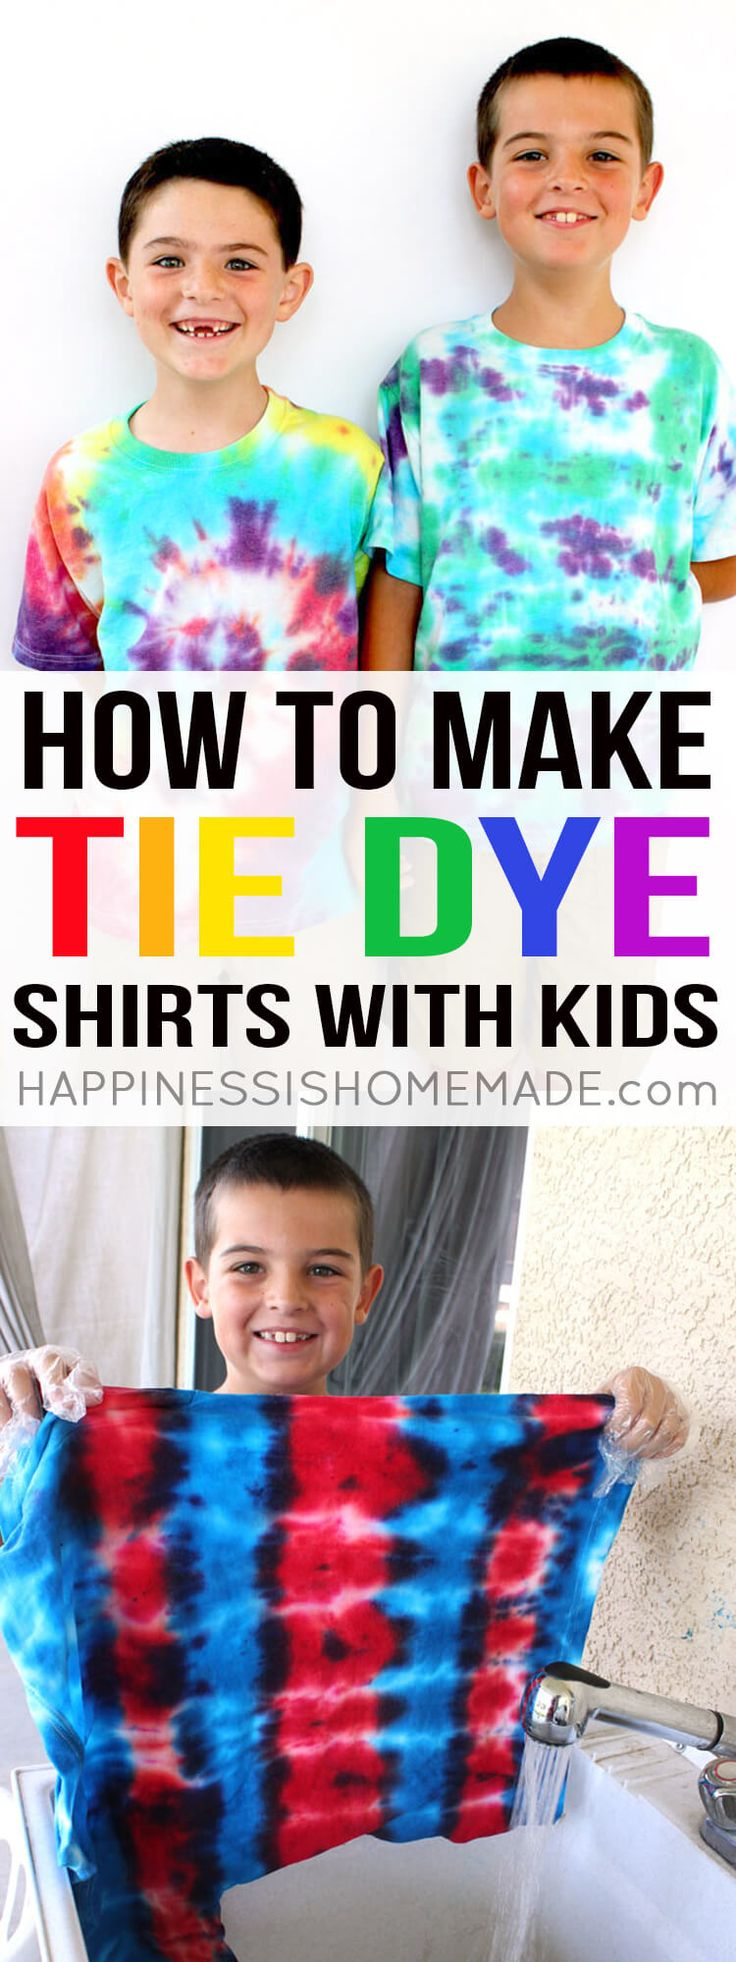 Making tie dye shirts is not as messy as it sounds! Learn how to tie dye with kids + a bunch of great tips, tricks, and tie dye patterns and instructions! via @hiHomemadeBlog